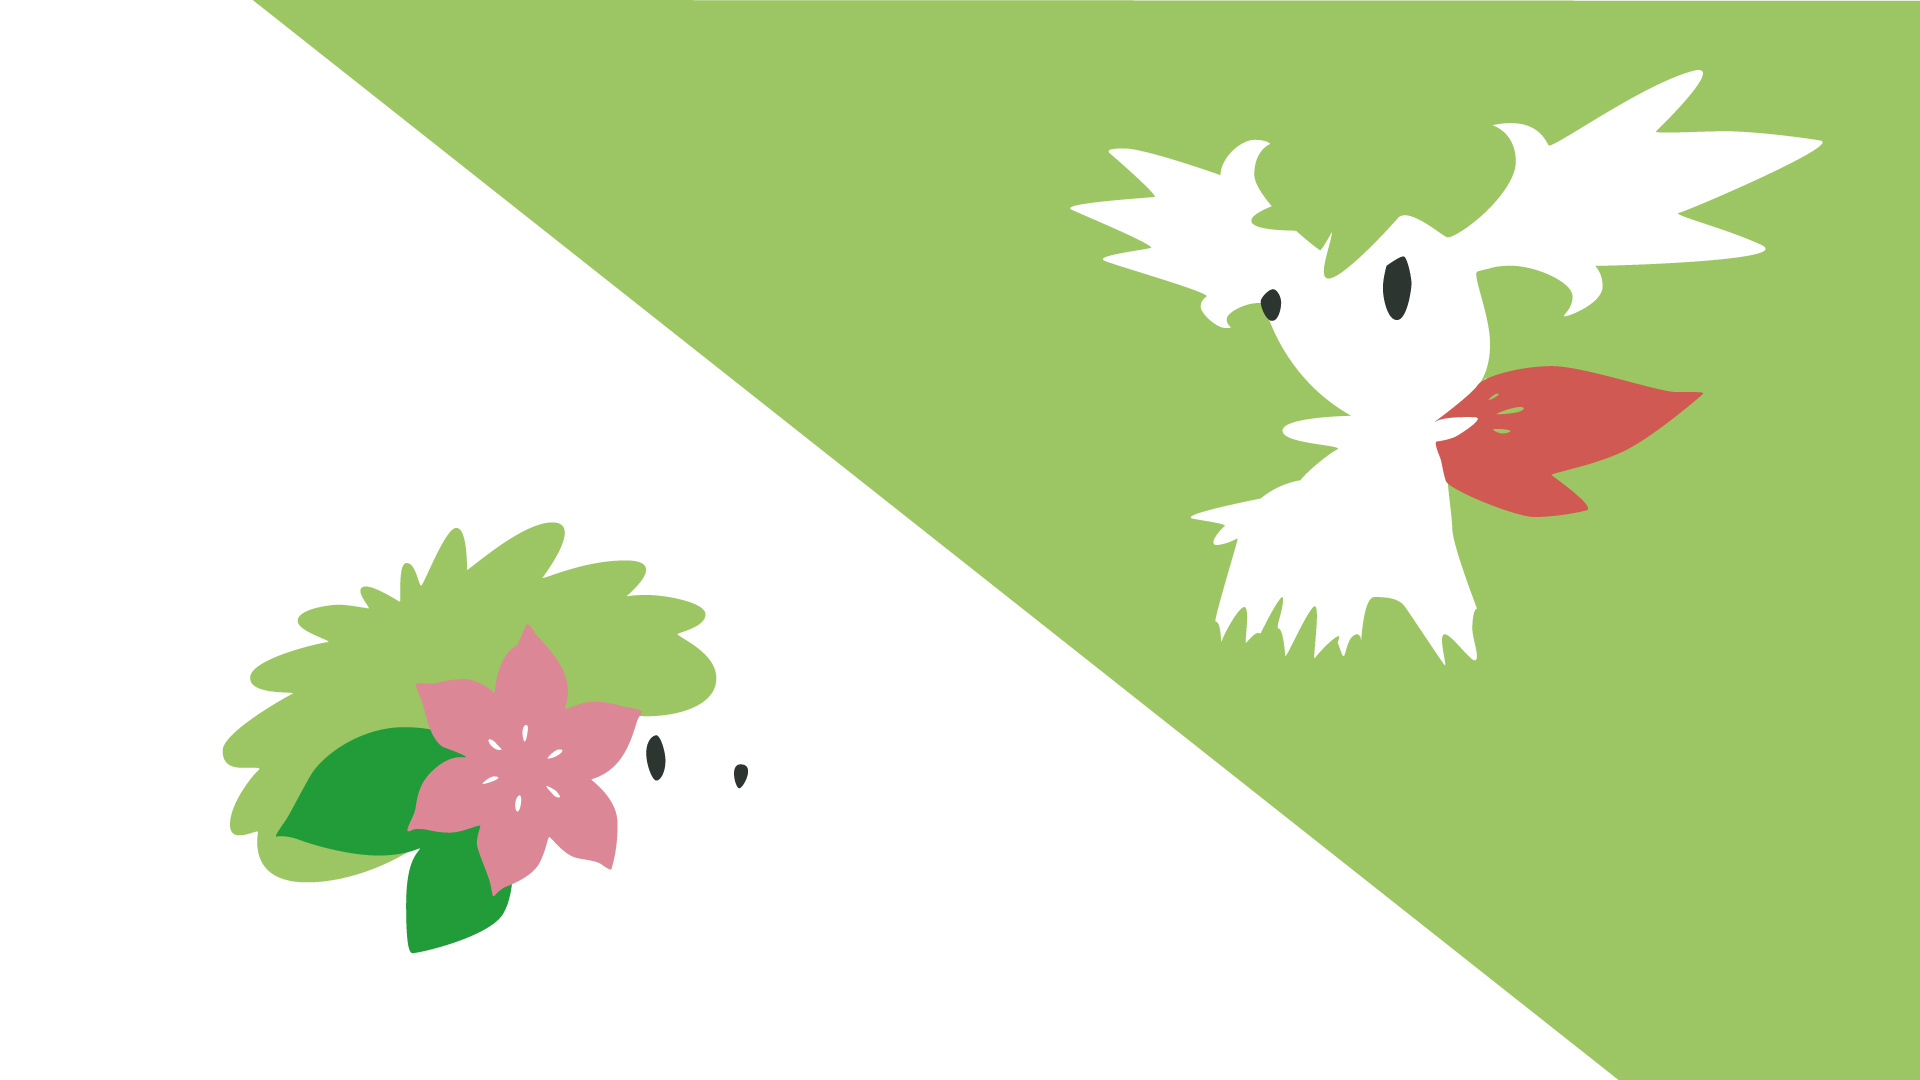 Shaymin-Minimalist-Vector-by-Krukmeister-on-DeviantArt-wallpaper-wpc5808694